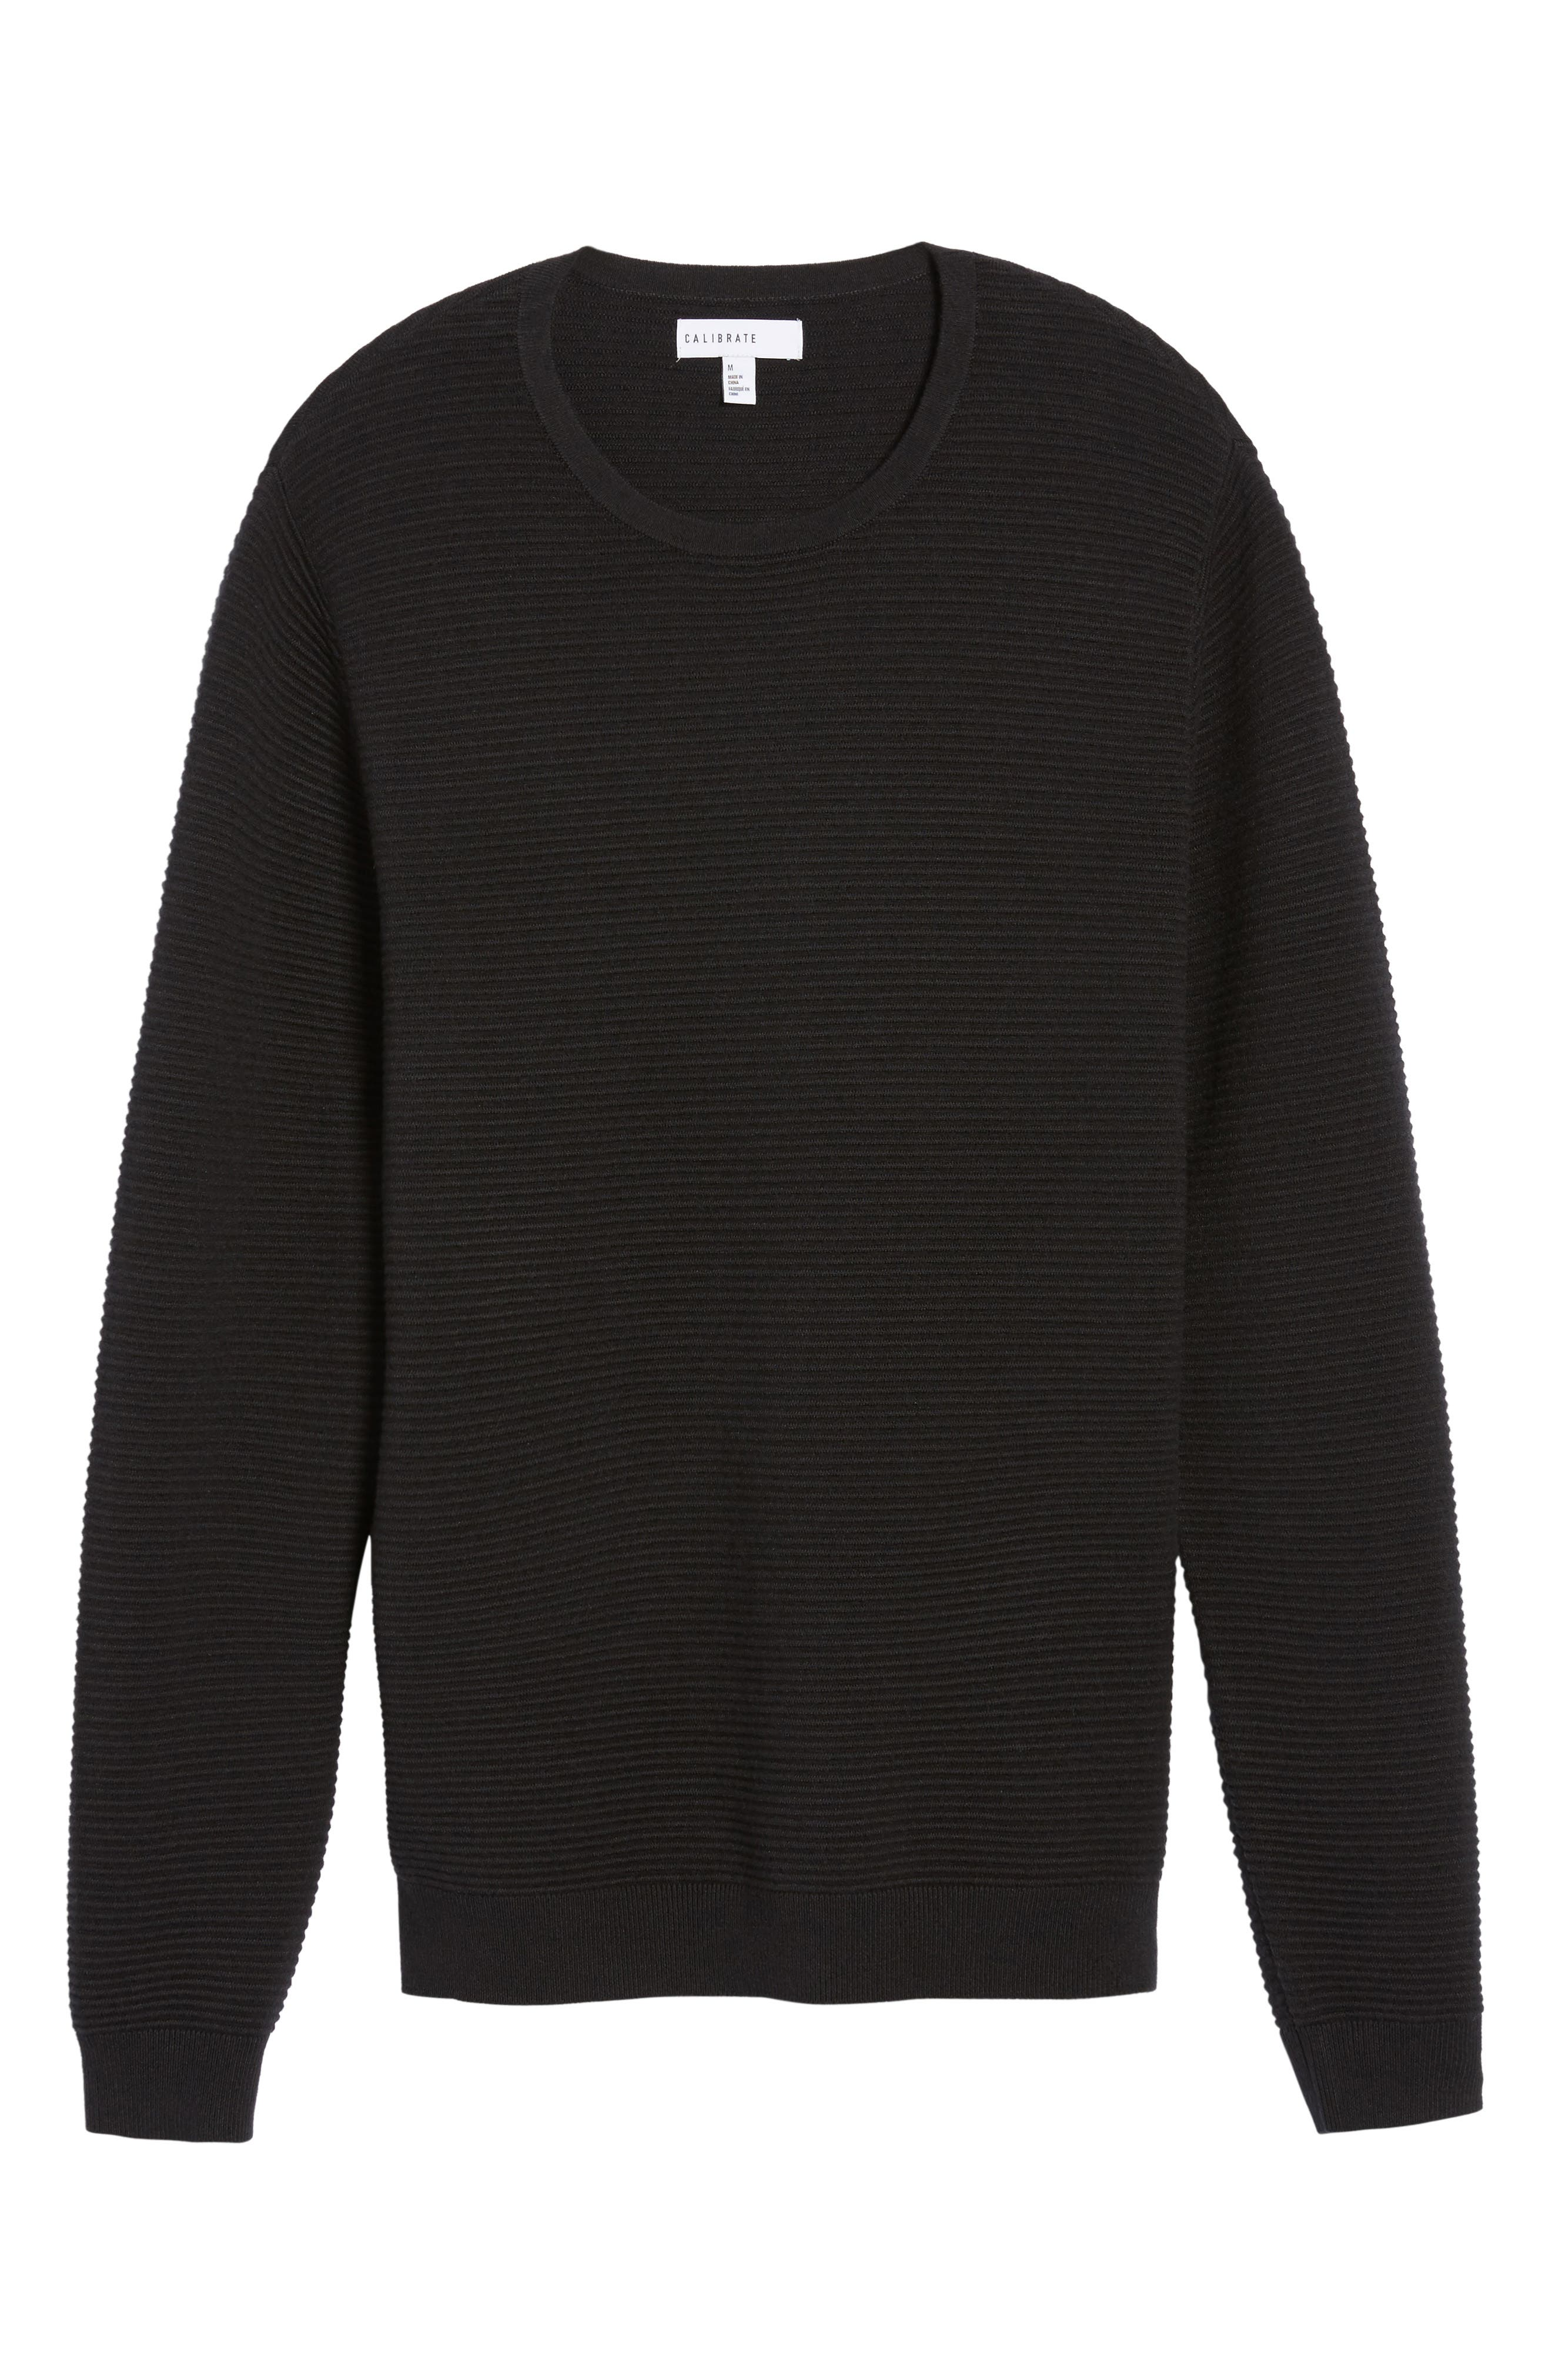 Ottoman Ribbed Crewneck Sweater,                             Alternate thumbnail 13, color,